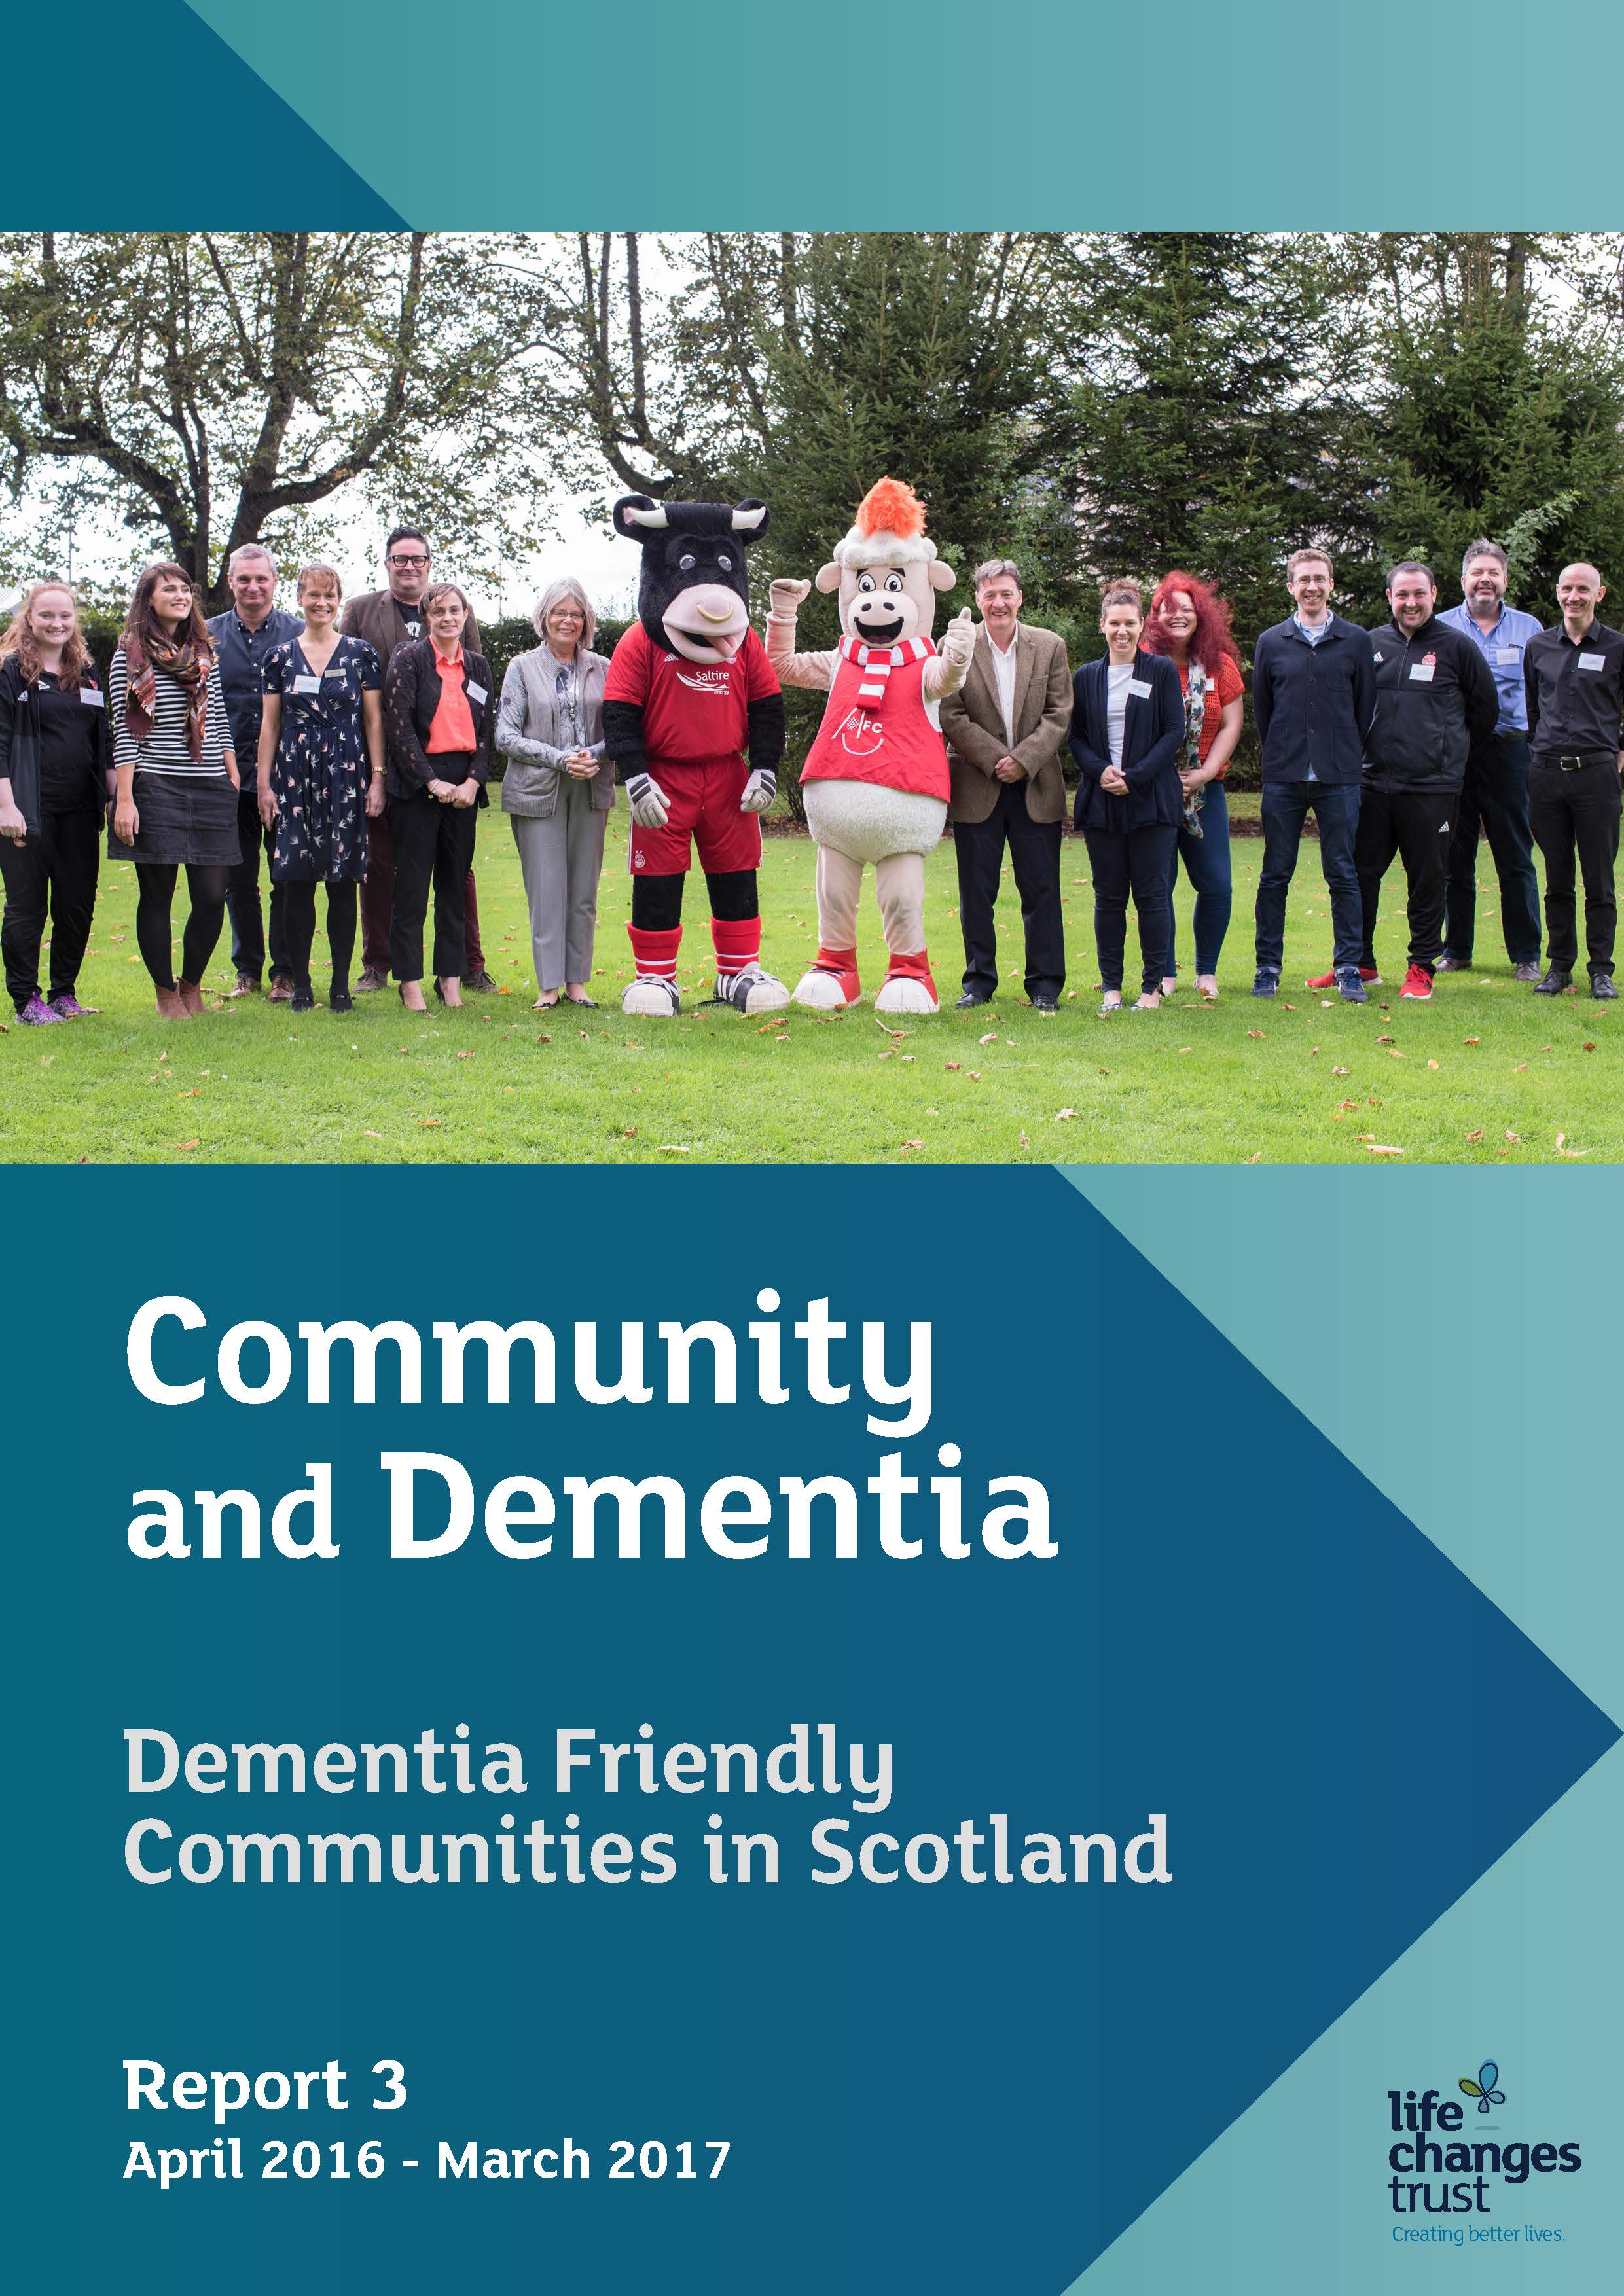 Dementia Friendly Communities in Scotland - Report 3